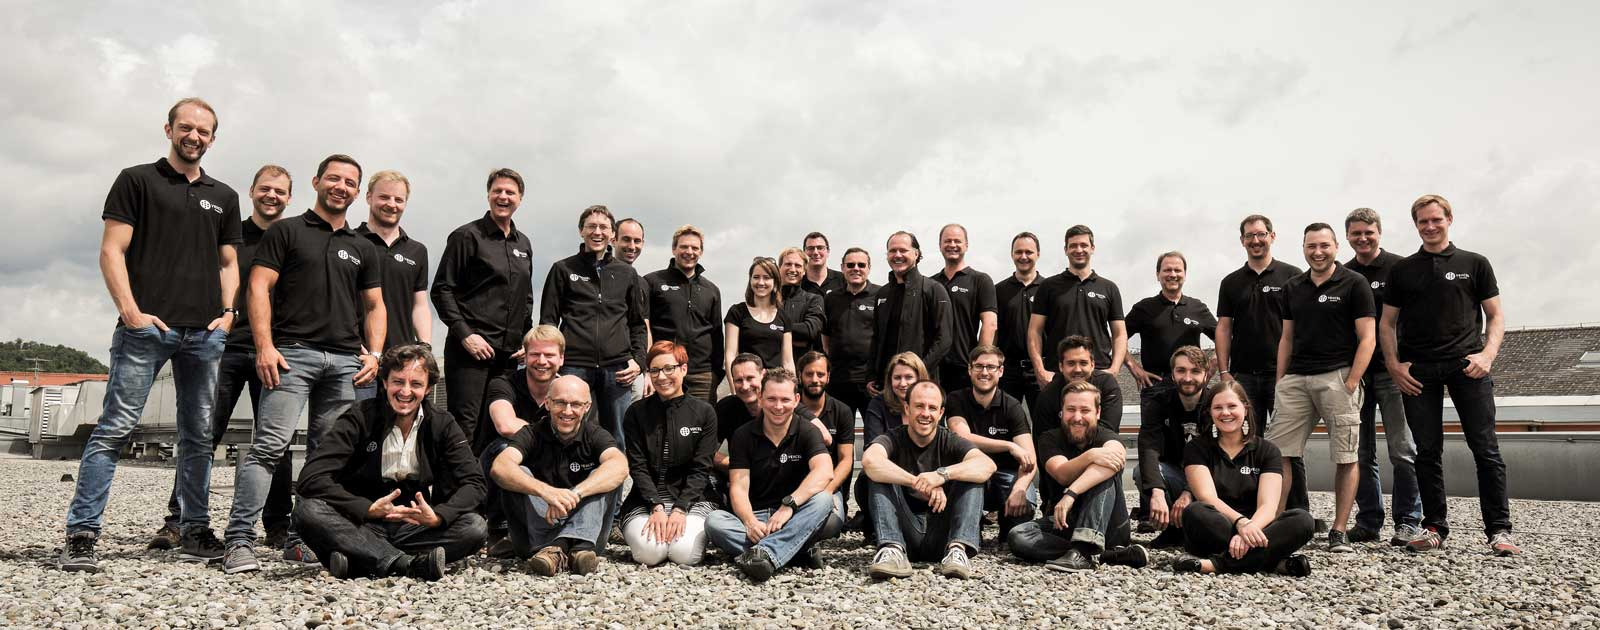 The Vexcel Imaging team based in Graz, Austria